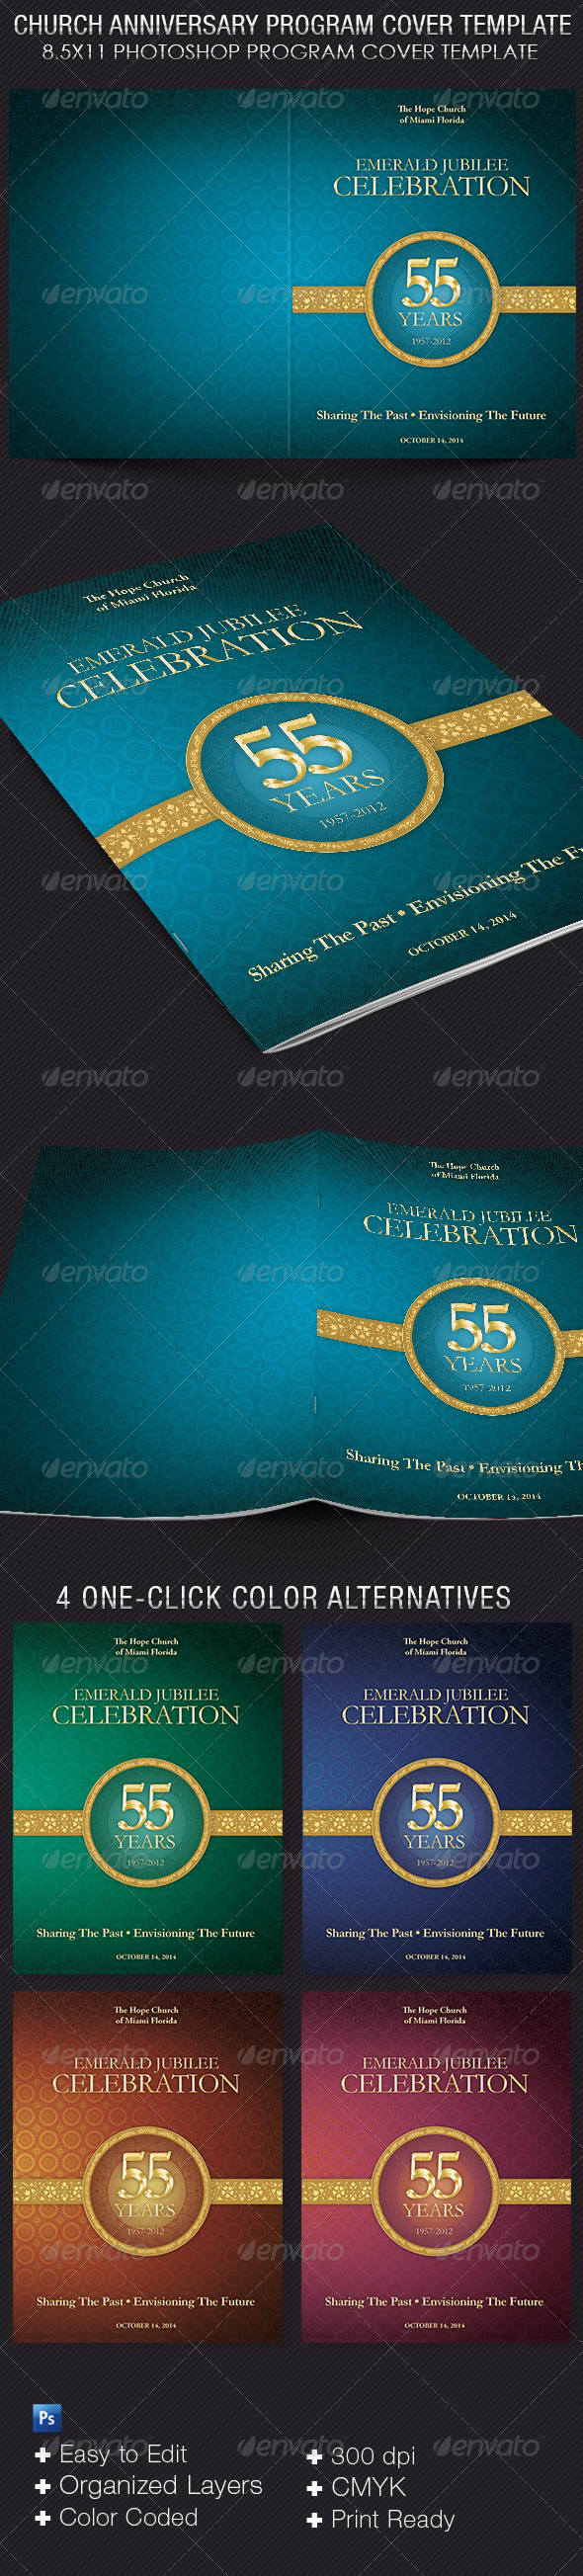 church anniversary program cover template by 4cgraphic